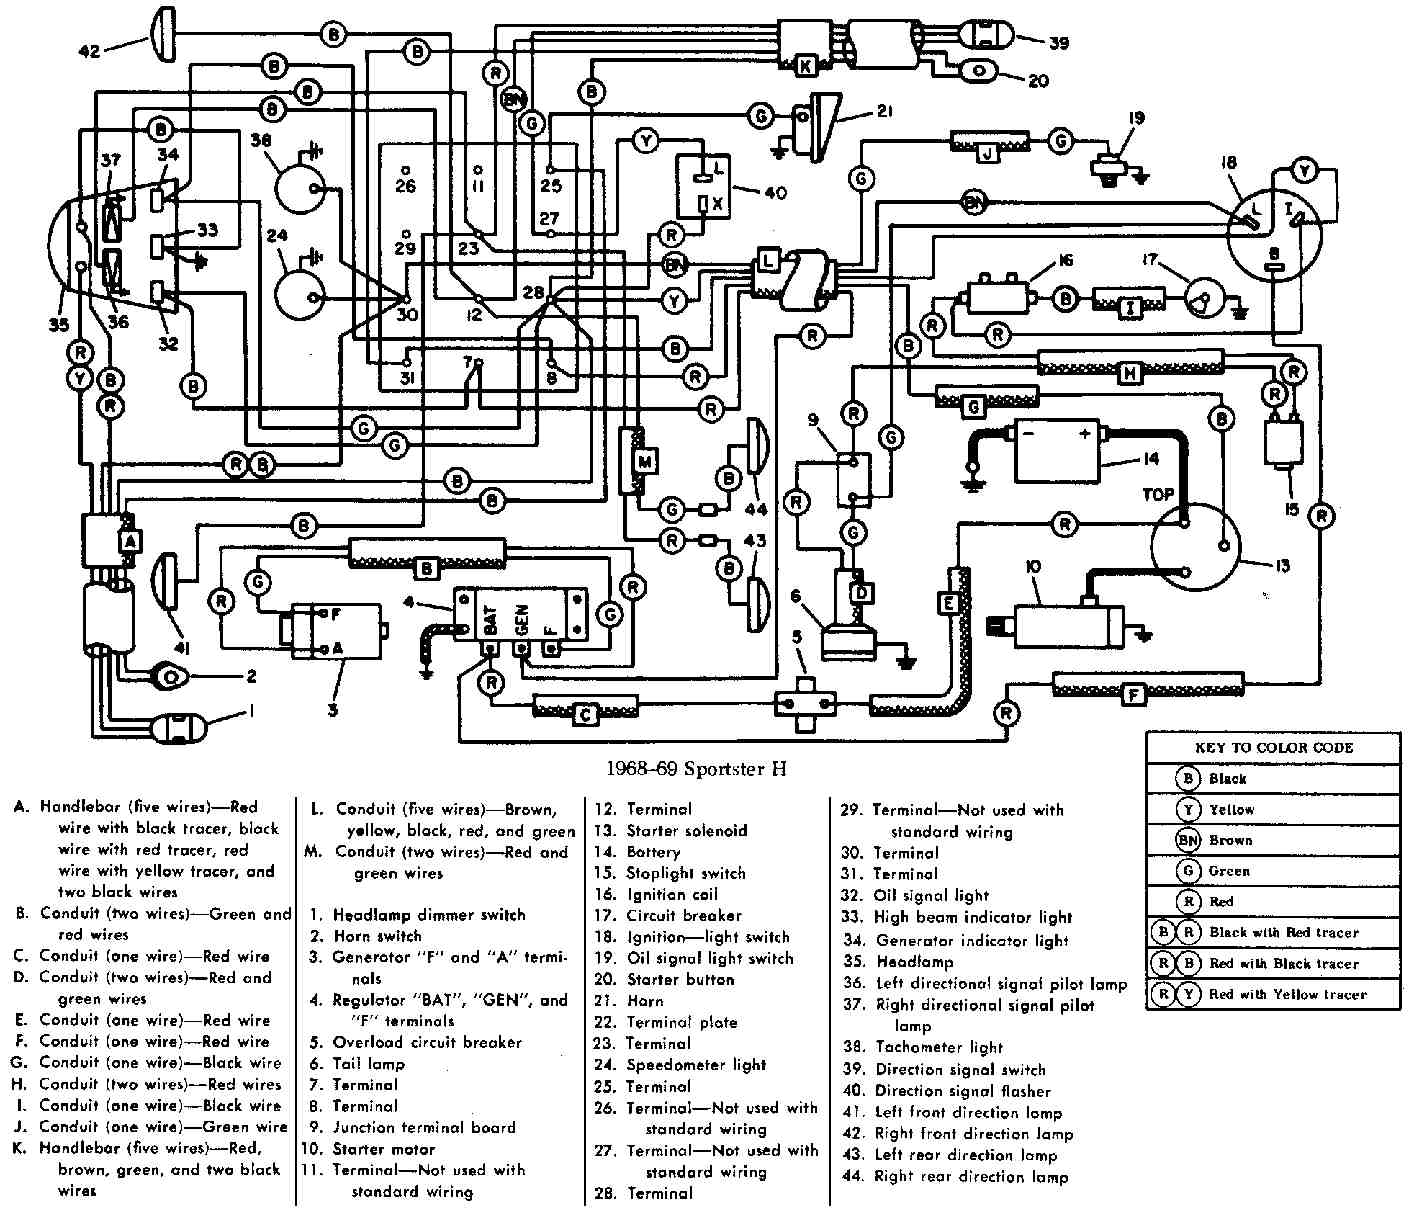 Harley+Davidson+Sportster+1968 1969+Electrical+Wiring+Diagram 1968 mustang wiring diagrams with tach, please help ford mustang 1968 ford mustang wiring diagram at bayanpartner.co